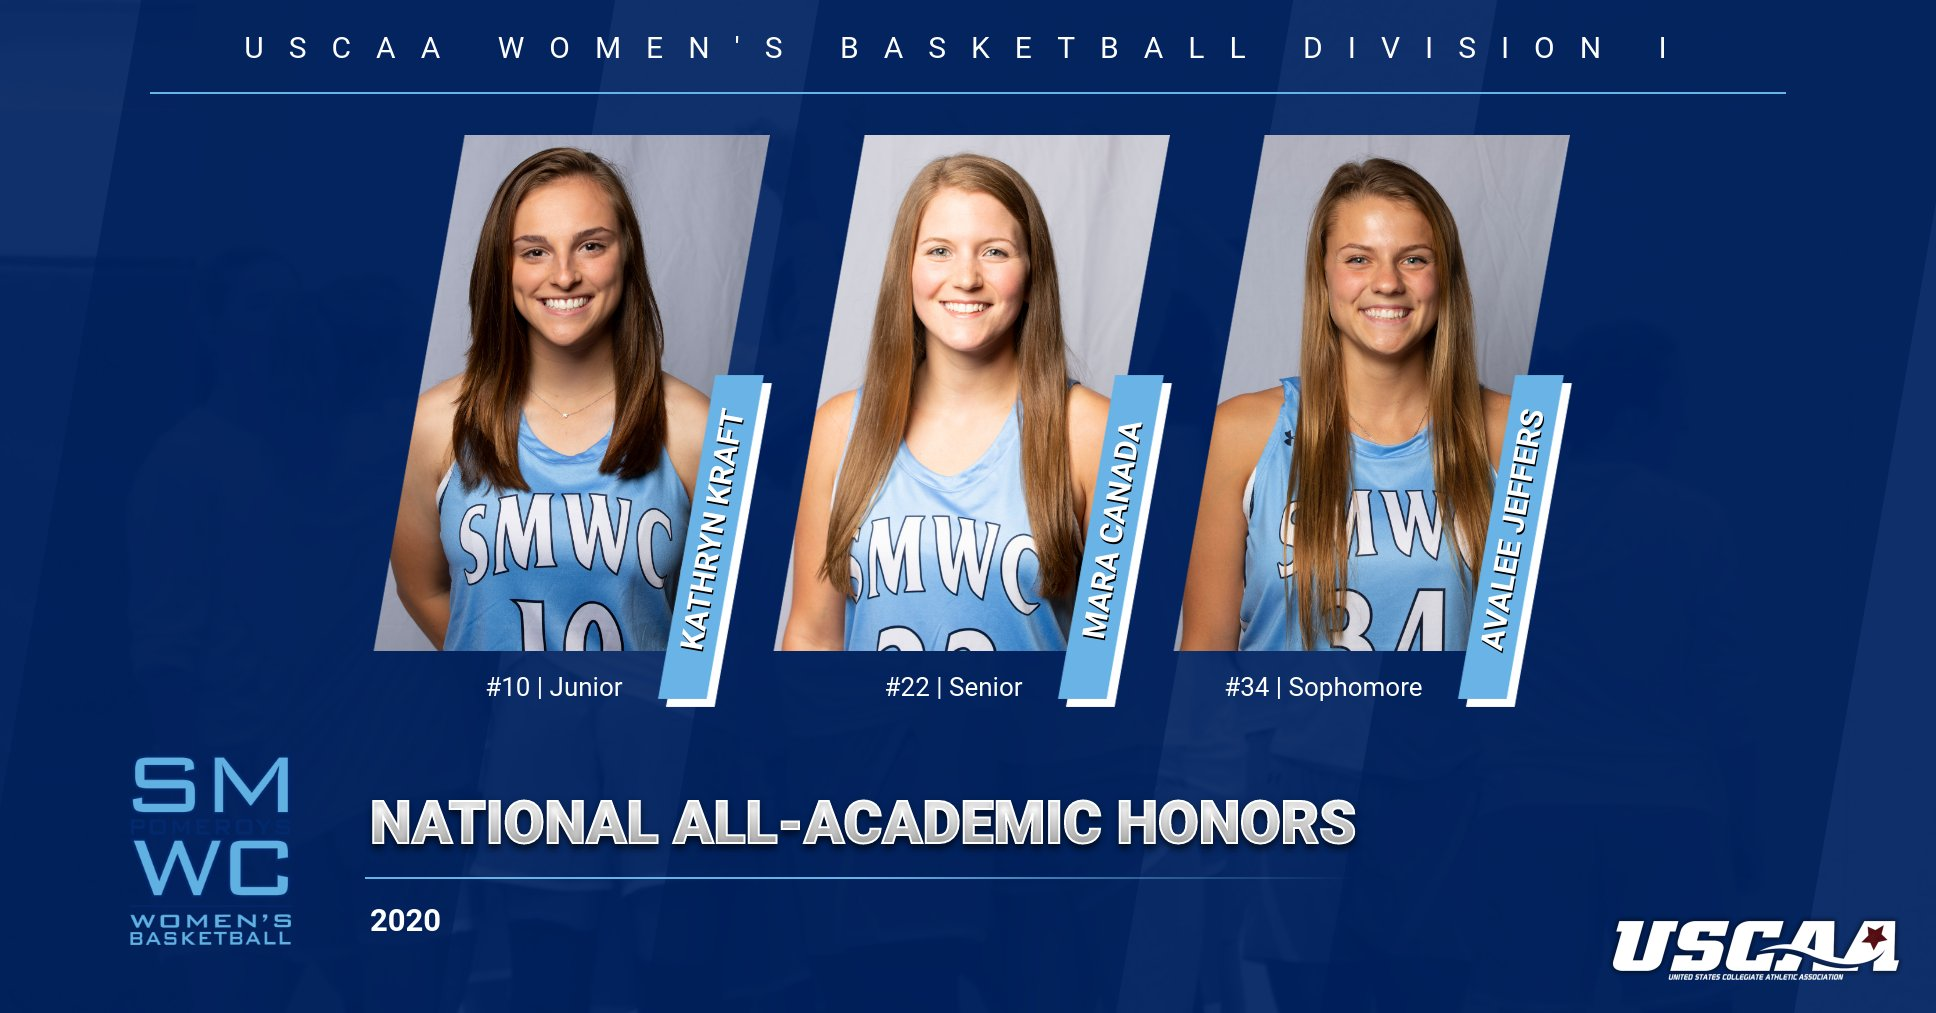 Three Women's Basketball Players Earn USCAA National All-Academic Honors